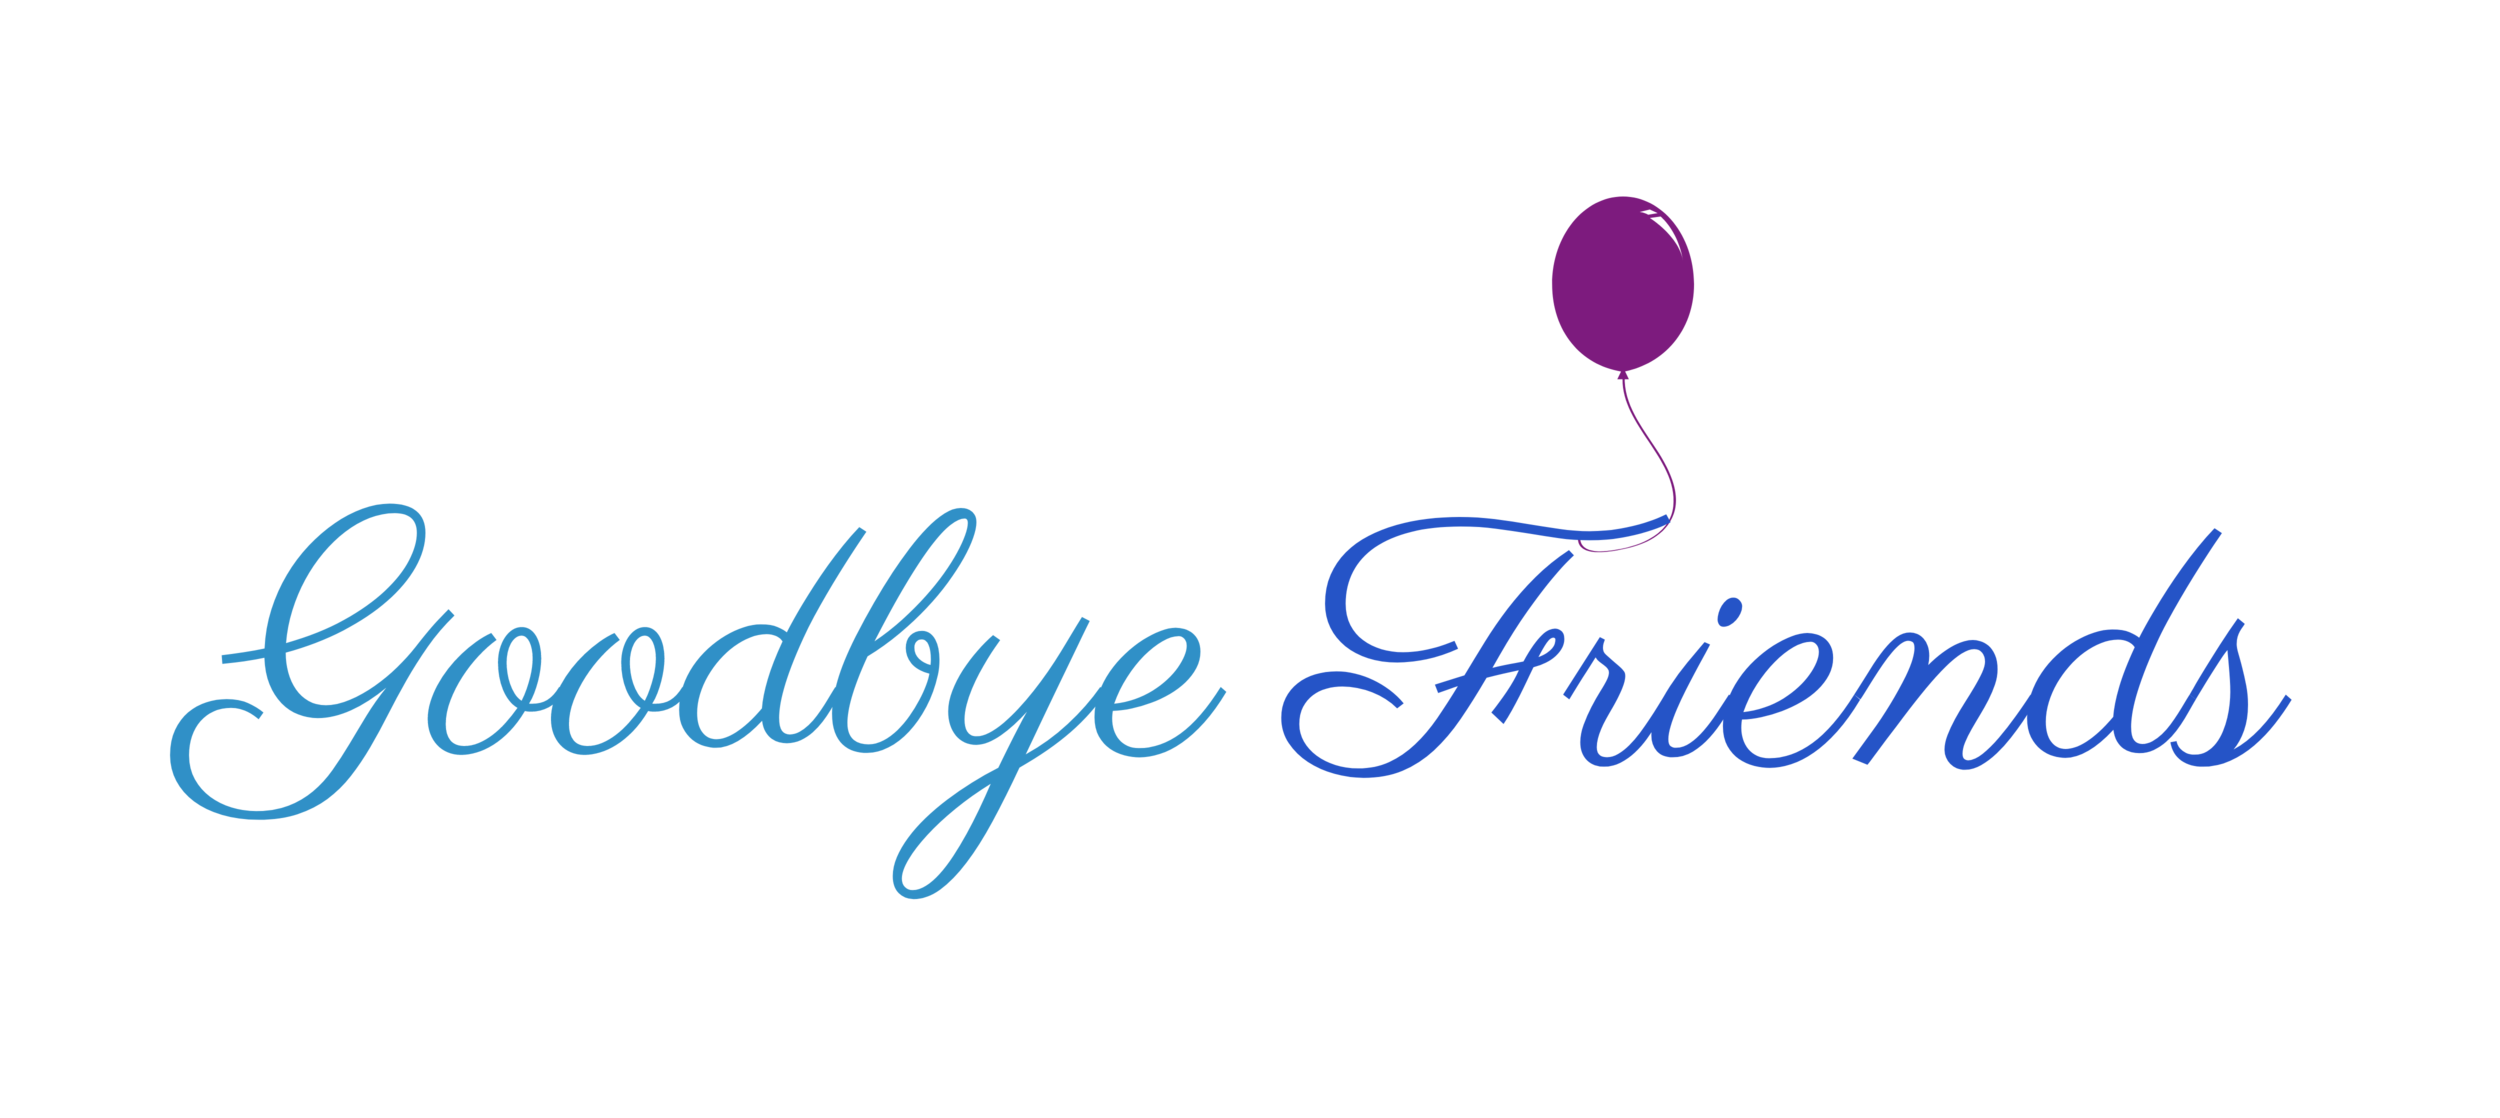 Goodbye-logo (2).png